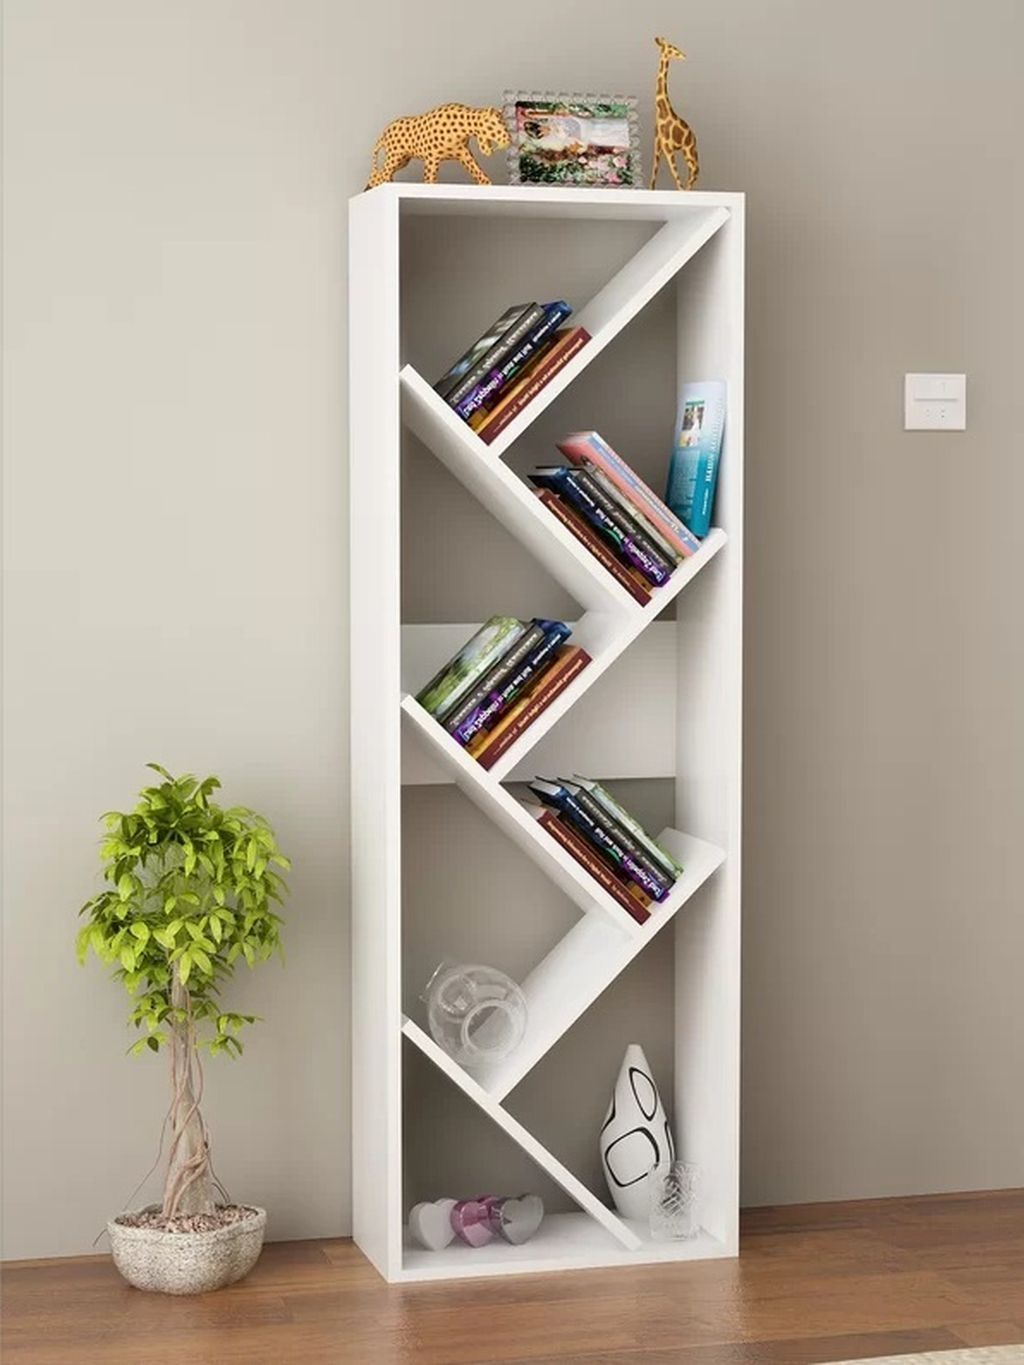 Cool 40 Casual Bookshelf Design Ideas To Decorate Your Room More At Https Homyfeed Com 2019 04 24 40 Casua Bucherregal Design Regal Design Bucherregal Dekor